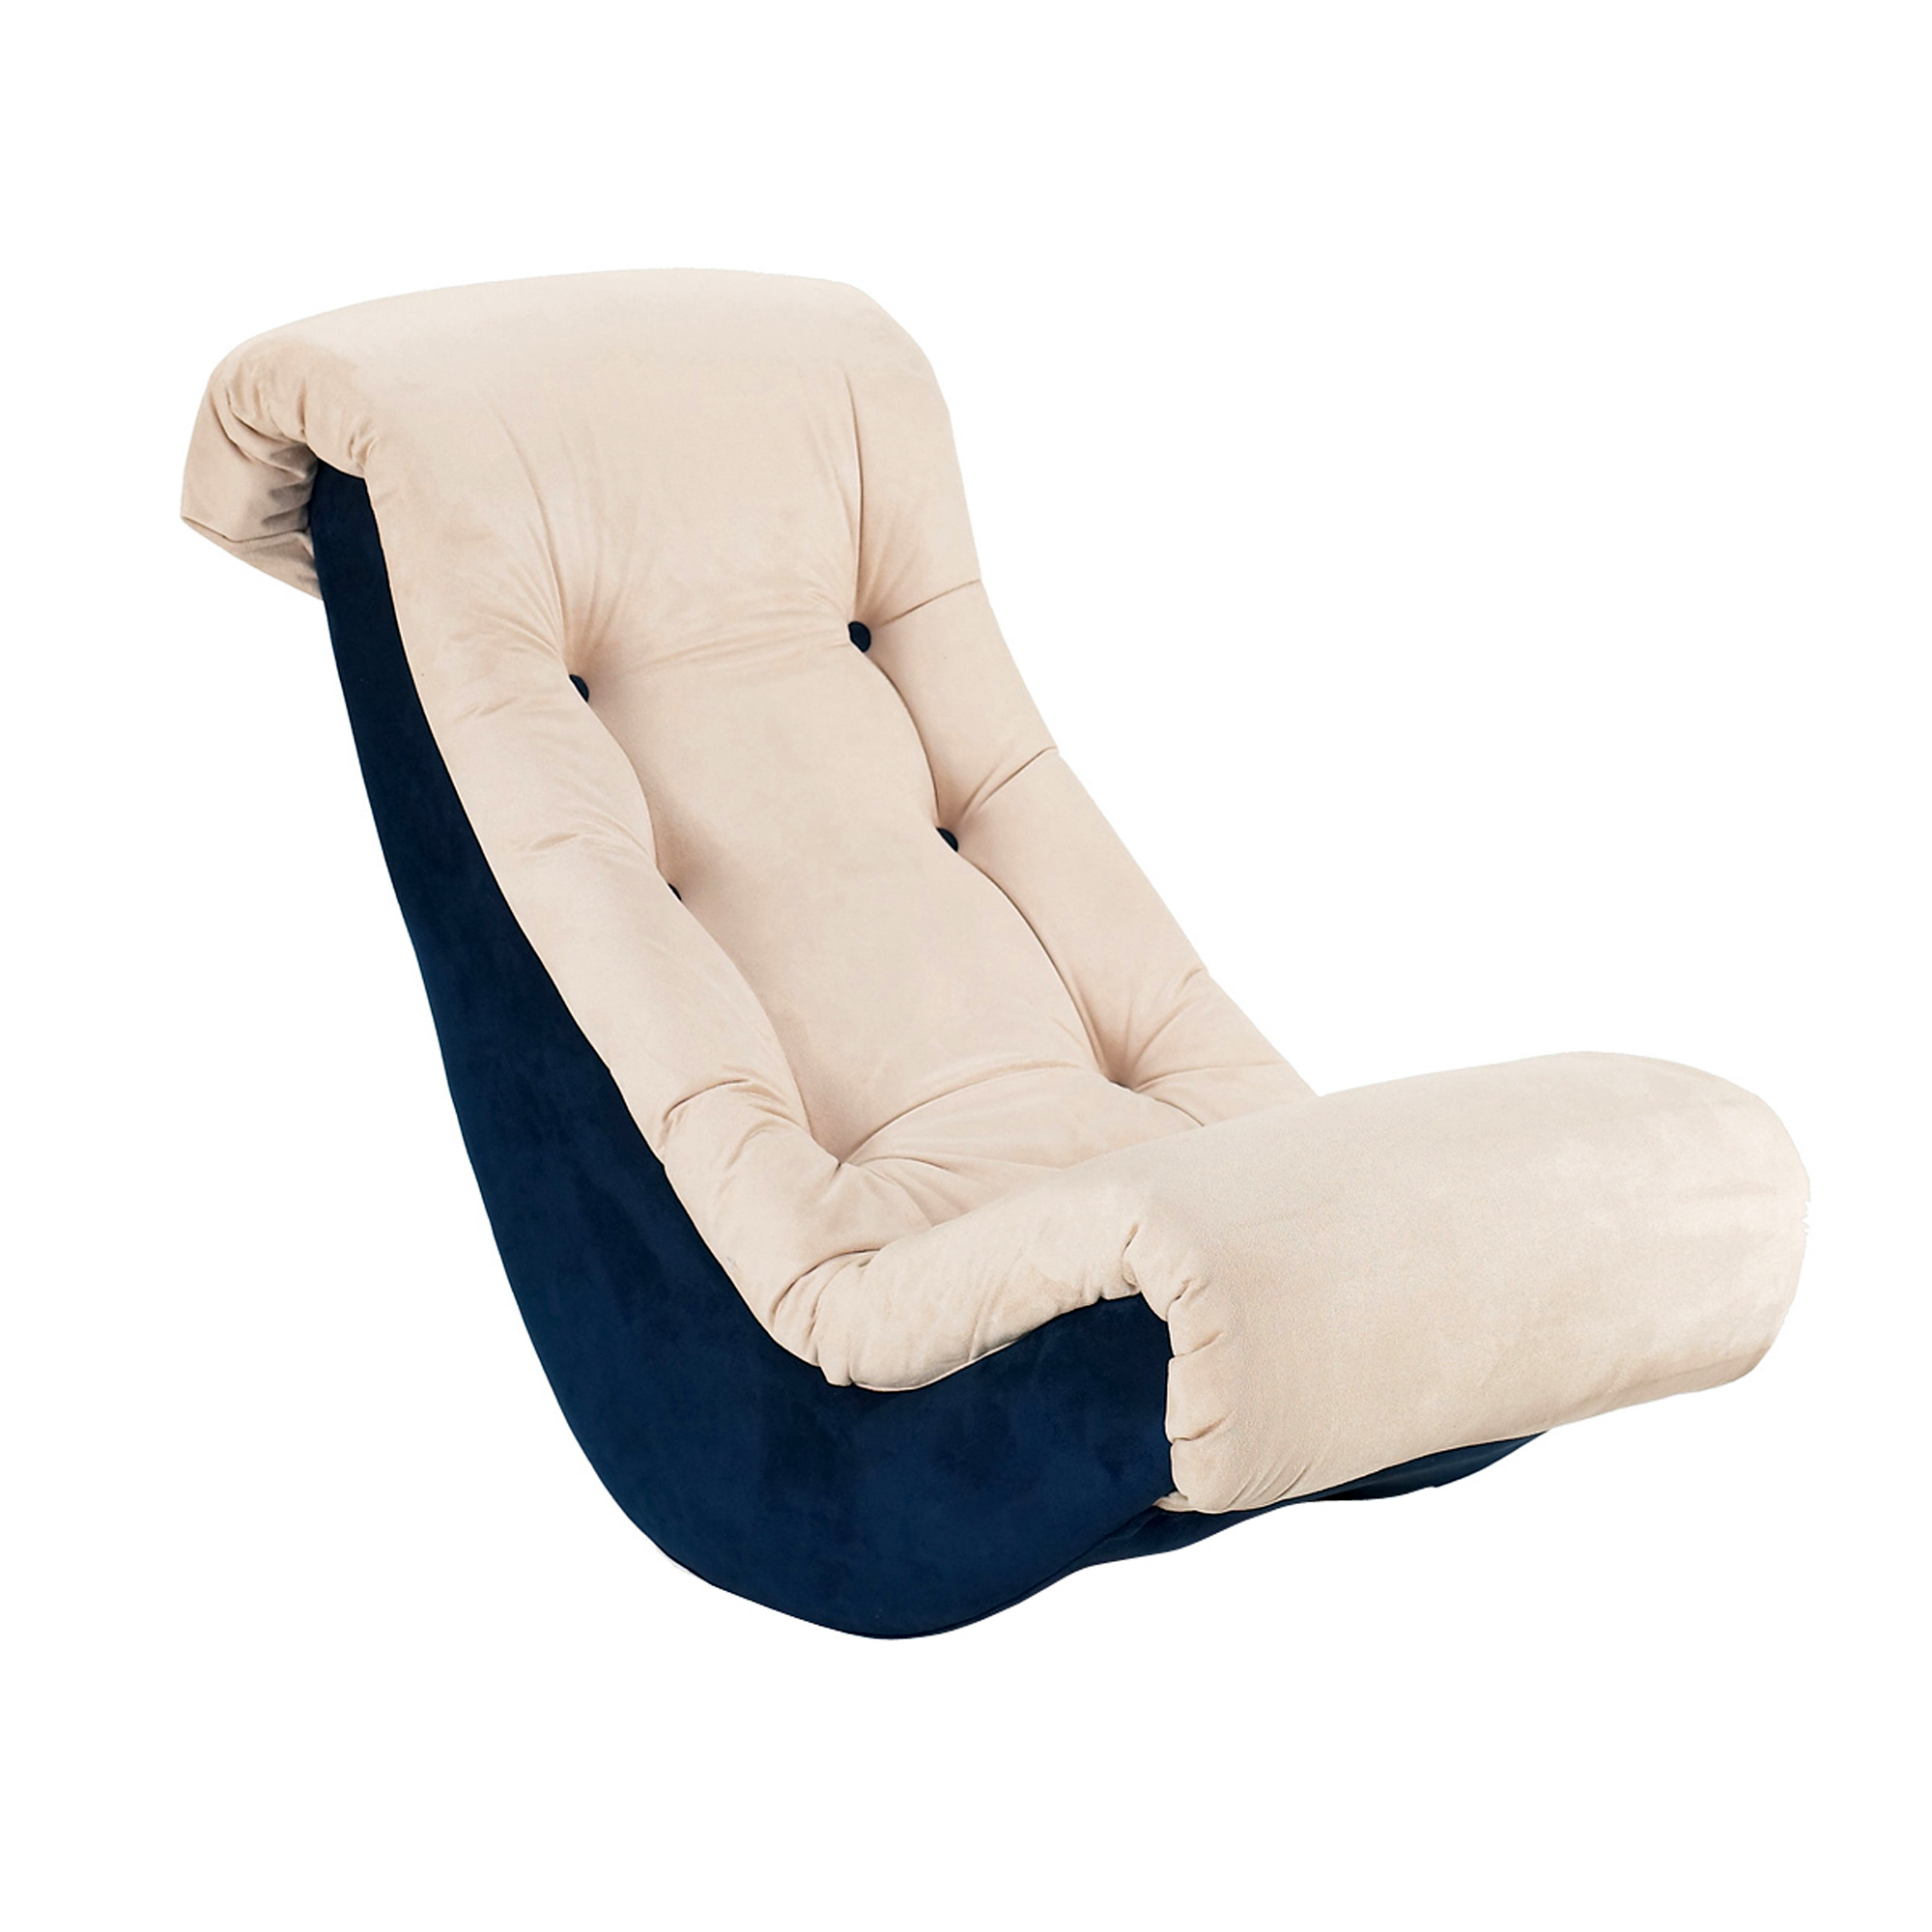 Banana Rocker Chair Komfy Kings Kids Classic Banana Rocker Beige And Navy